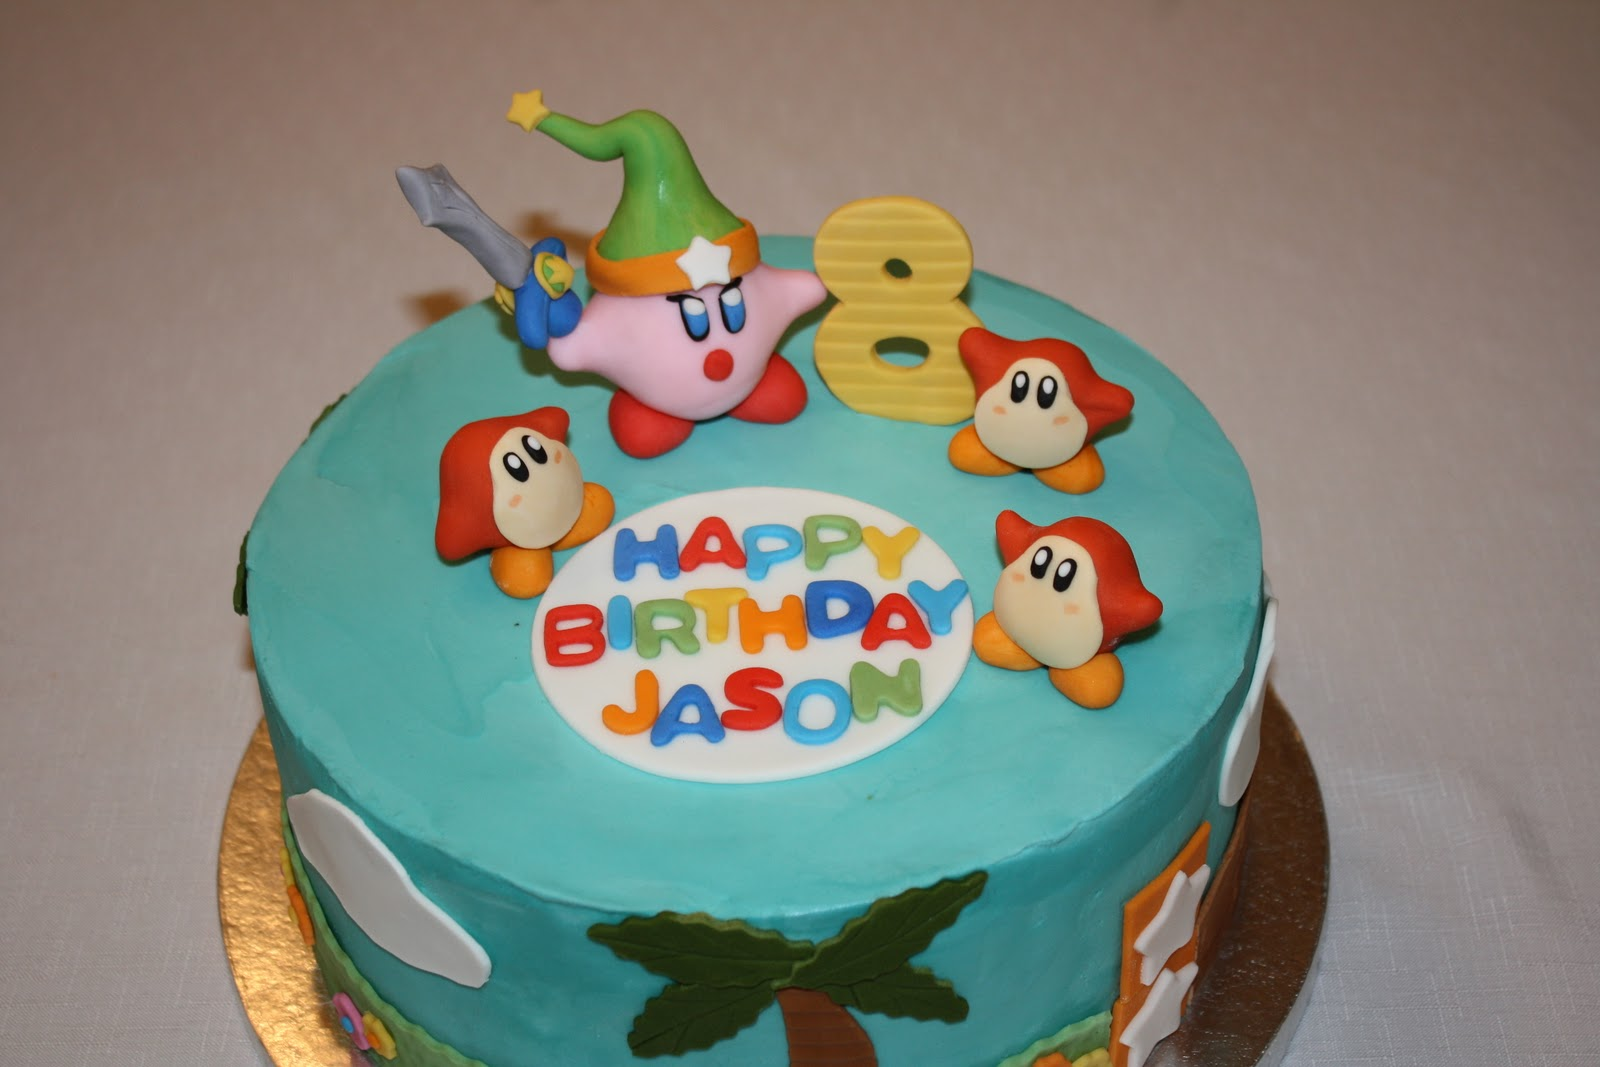 Happy Birthday Jason Cake Images